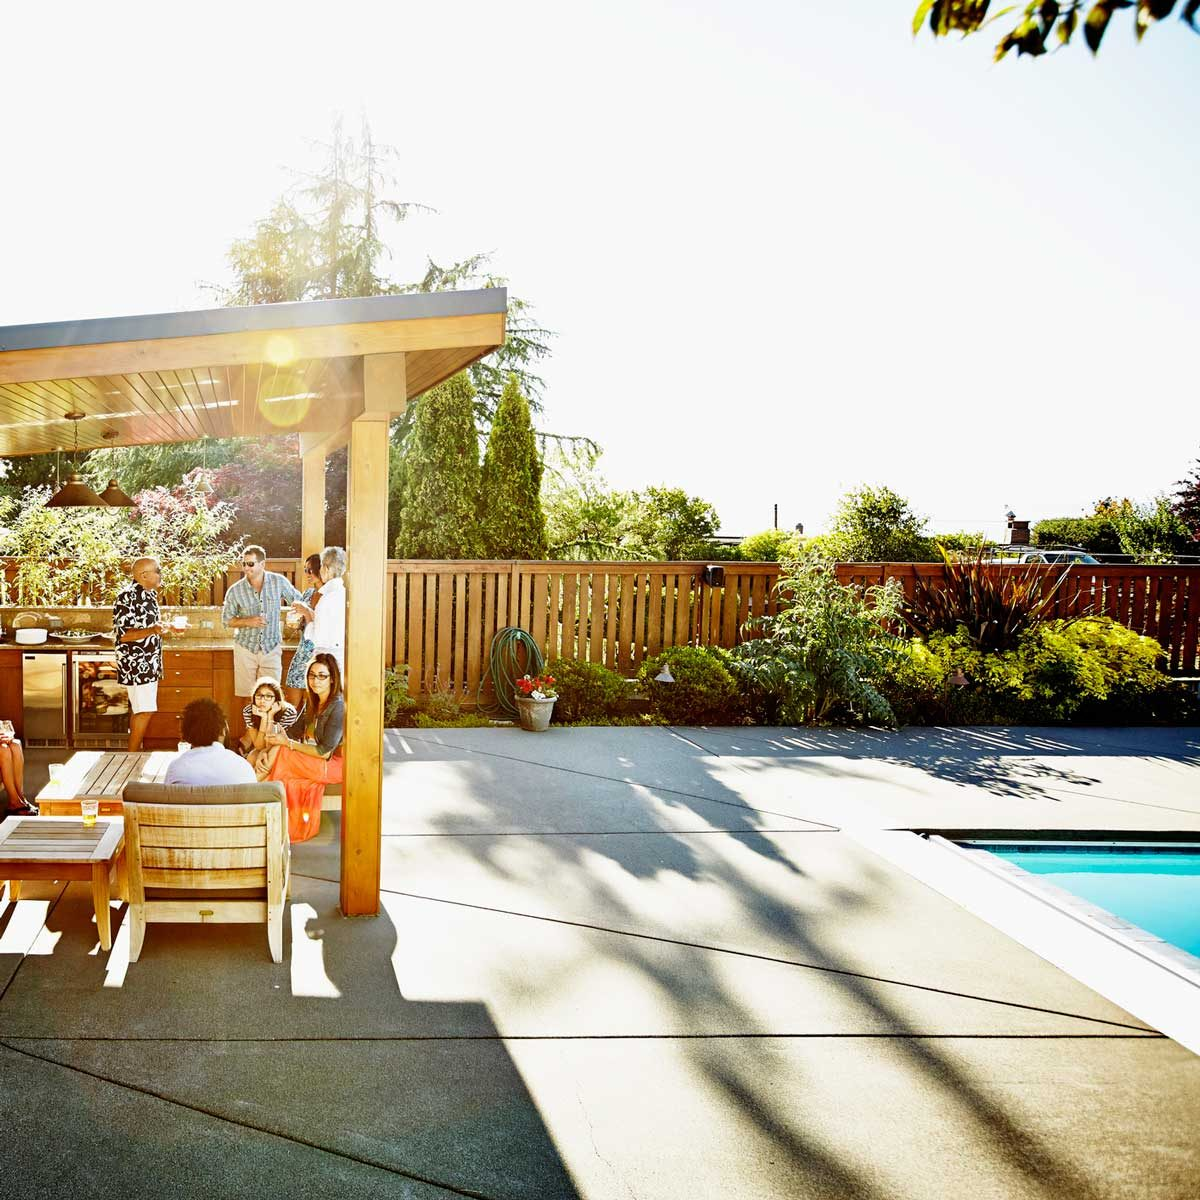 Pool Cabana Gettyimages 521339577